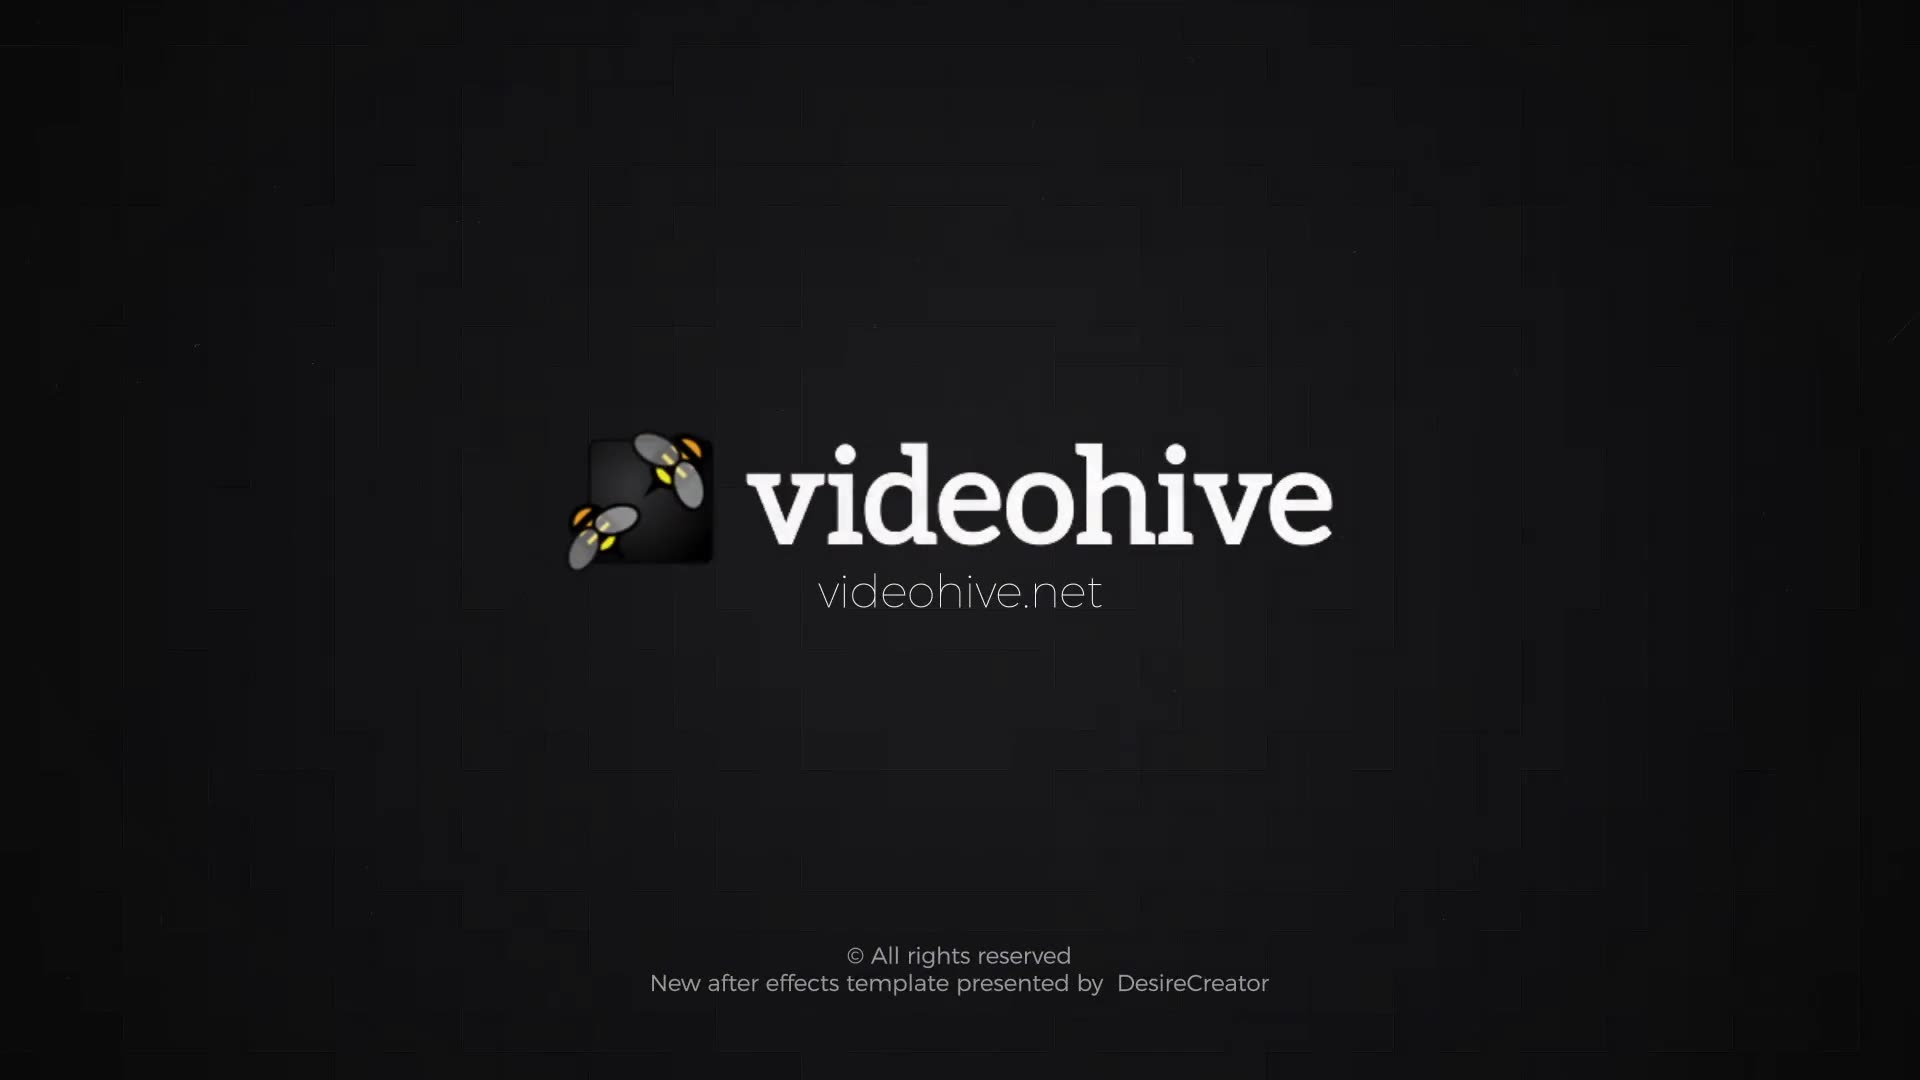 Distortion Logo Videohive 20730995 After Effects Image 6